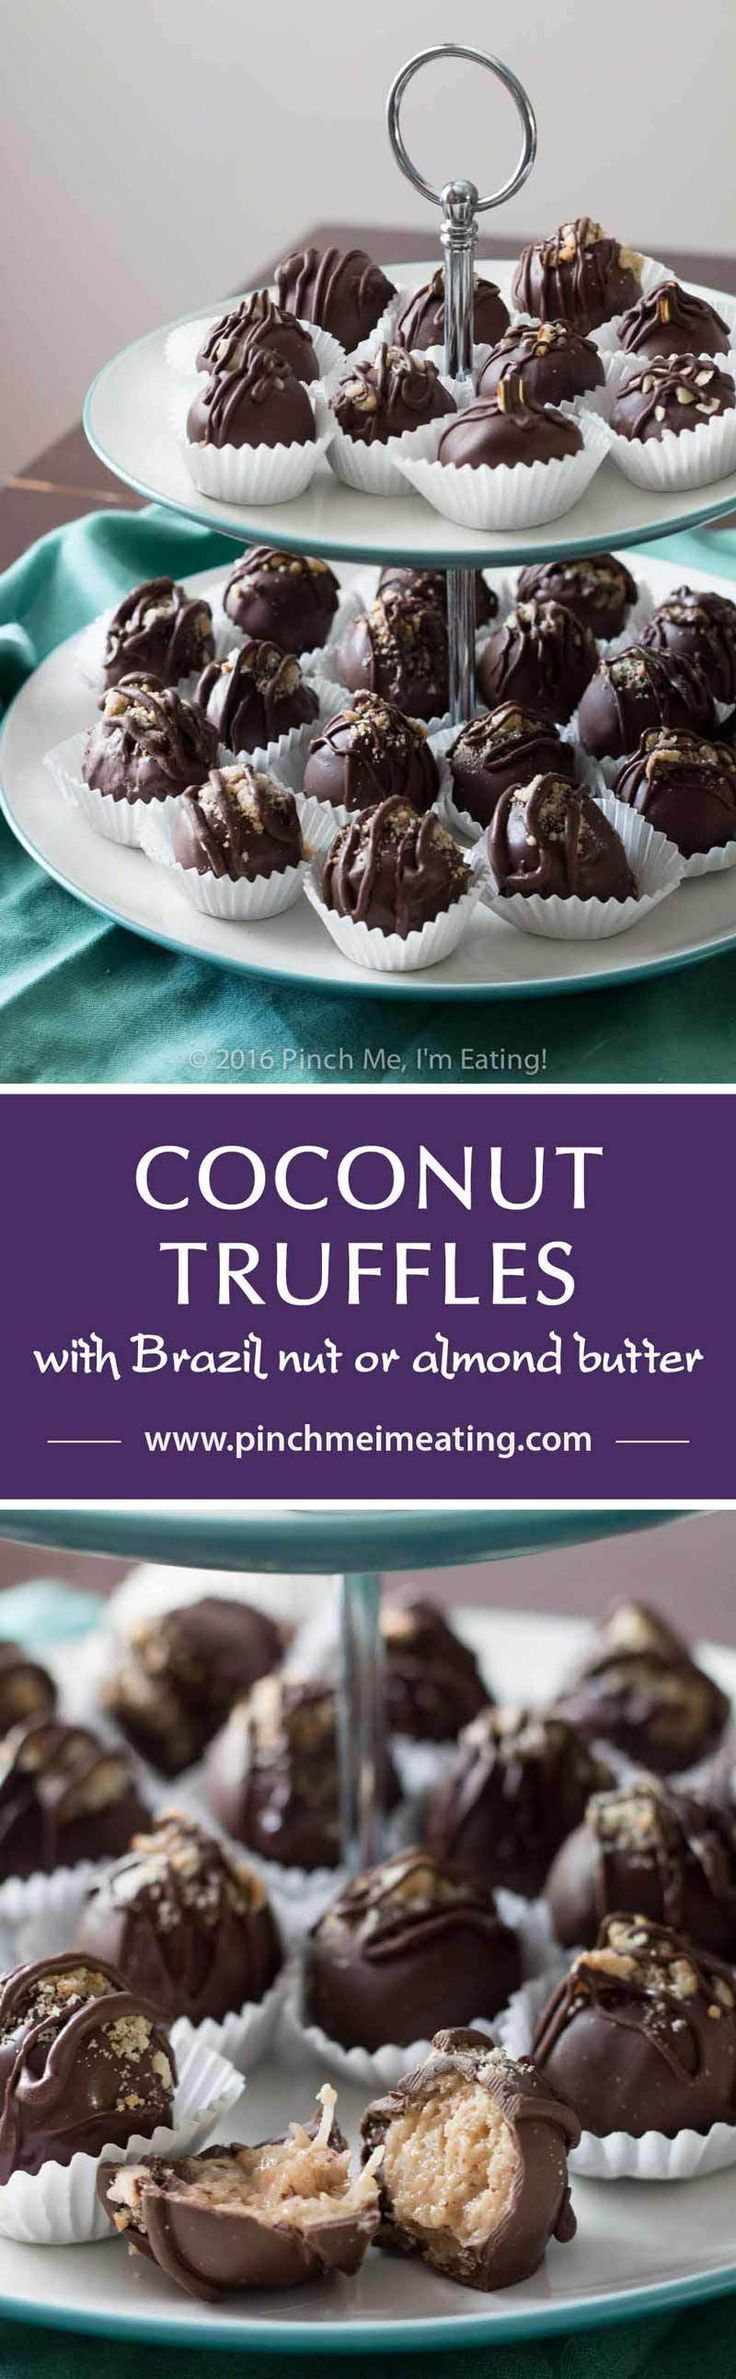 Chocolate covered coconut truffles with Brazil nut or almond butter are a rich…